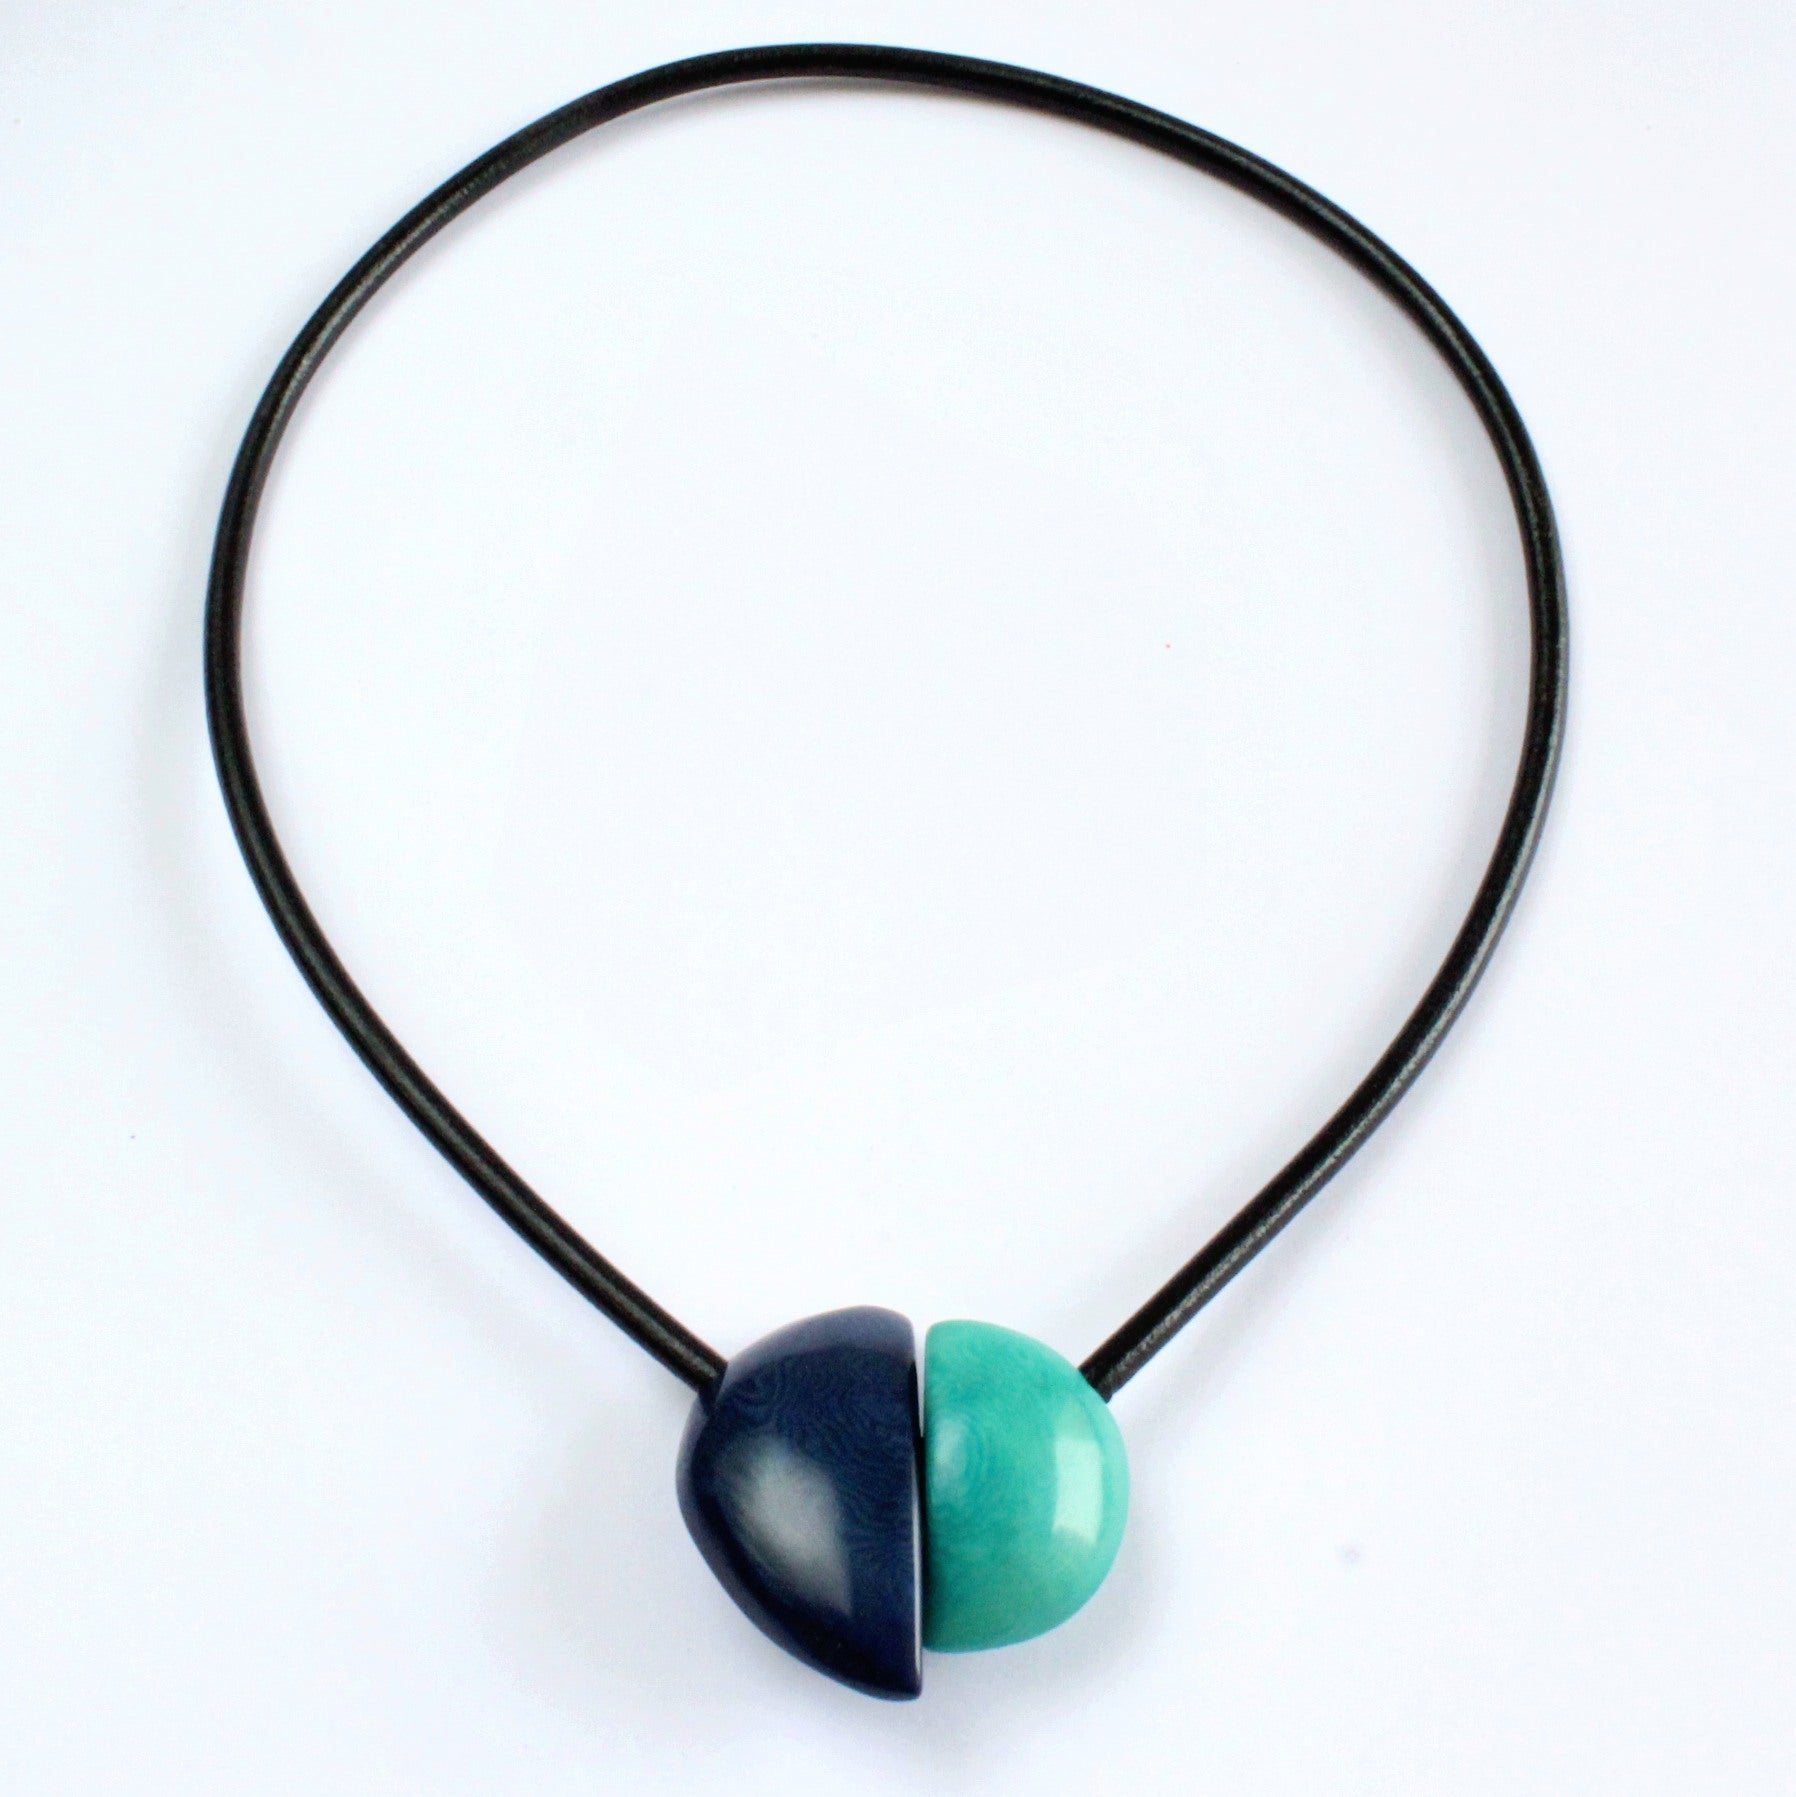 Handmade necklace, tagua nut, blue turquoise, magnetic